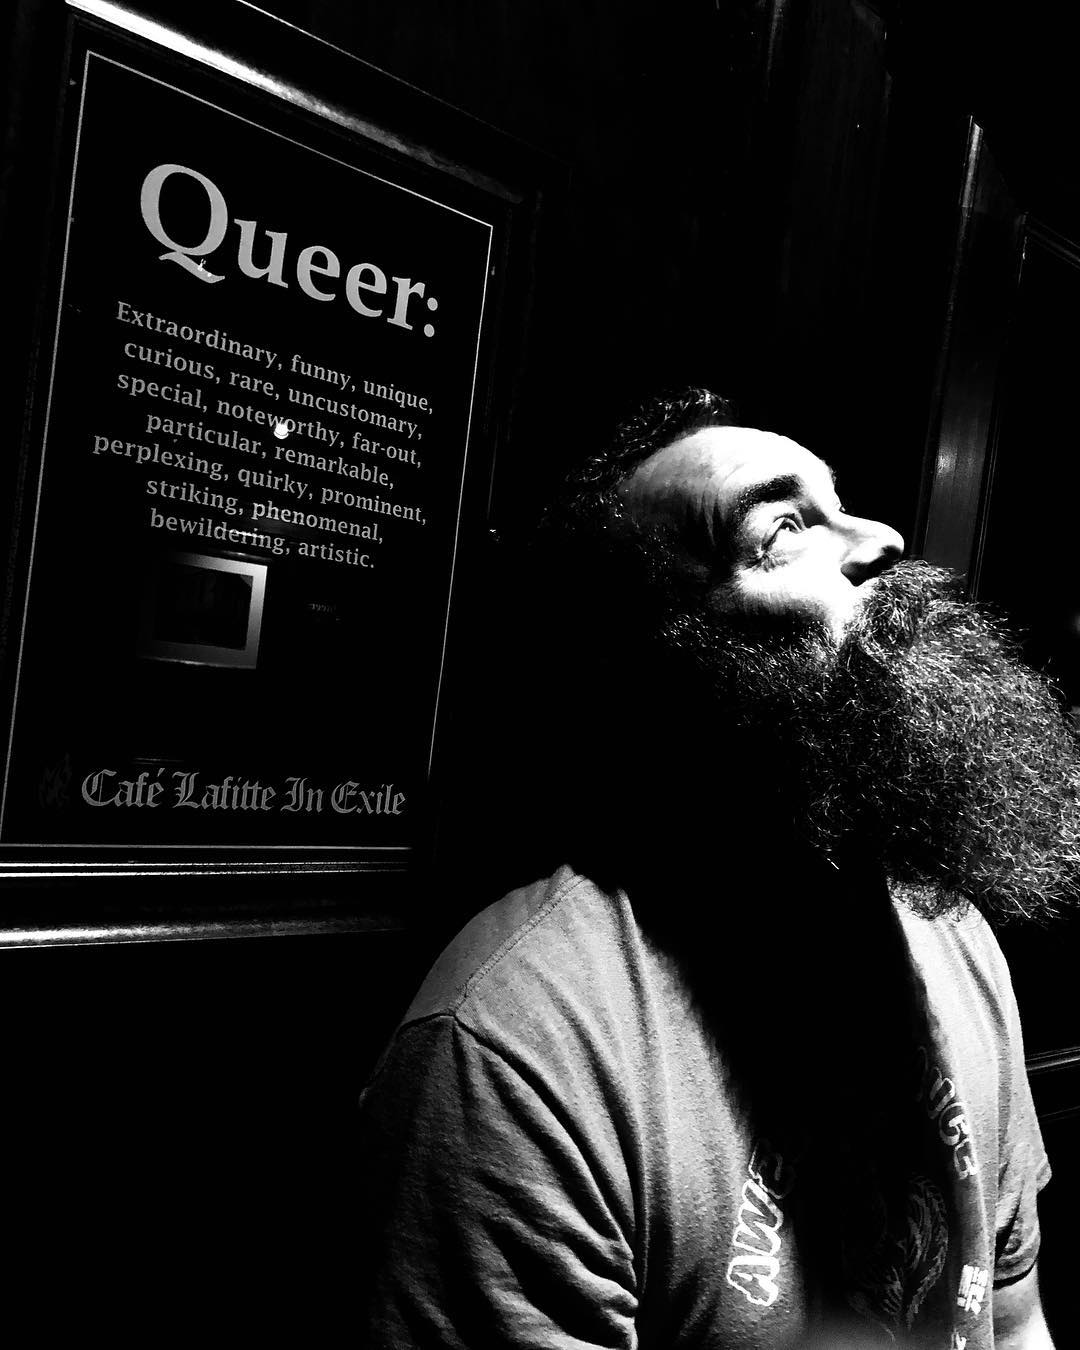 I think I fit that definition. Happy Pride month!  #pride #throwbackthursday (Thank you to my buddy Dwayne @big_dfh for the photo)